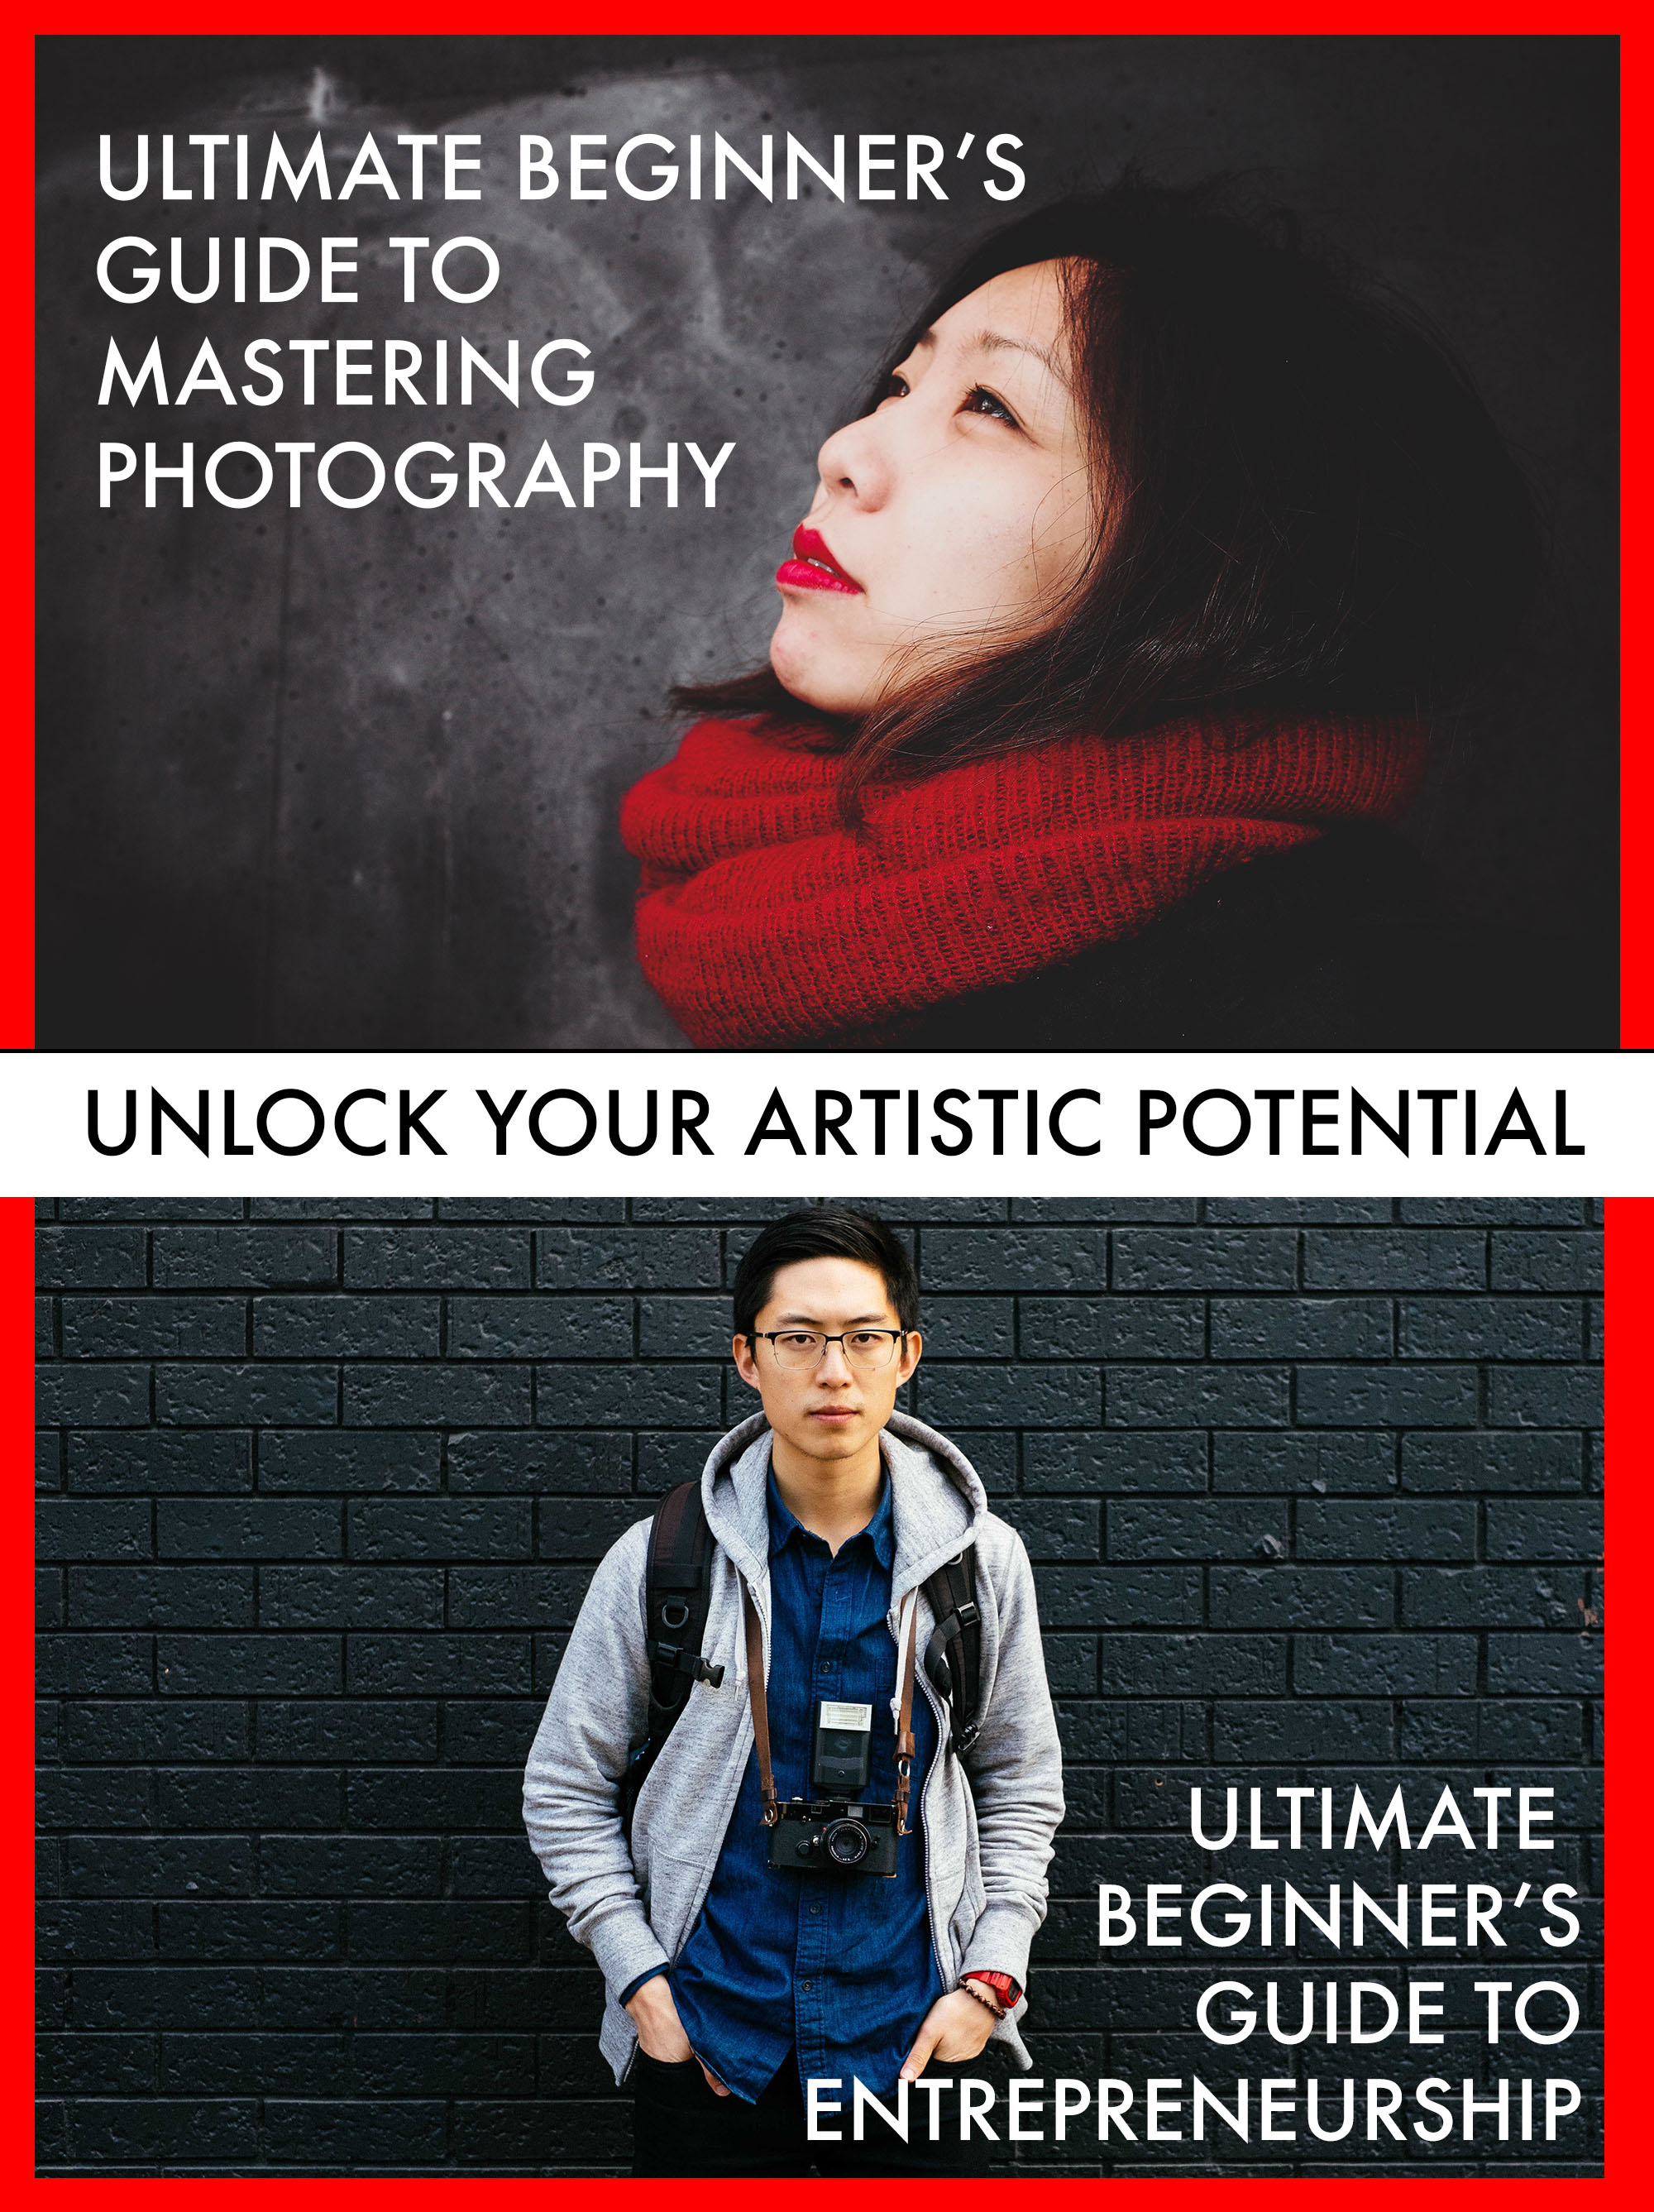 Unlock Your Artistic Potential: Enroll in Ultimate Beginner's Guide to Mastering Photography + Entrepreneurship on Udemy!